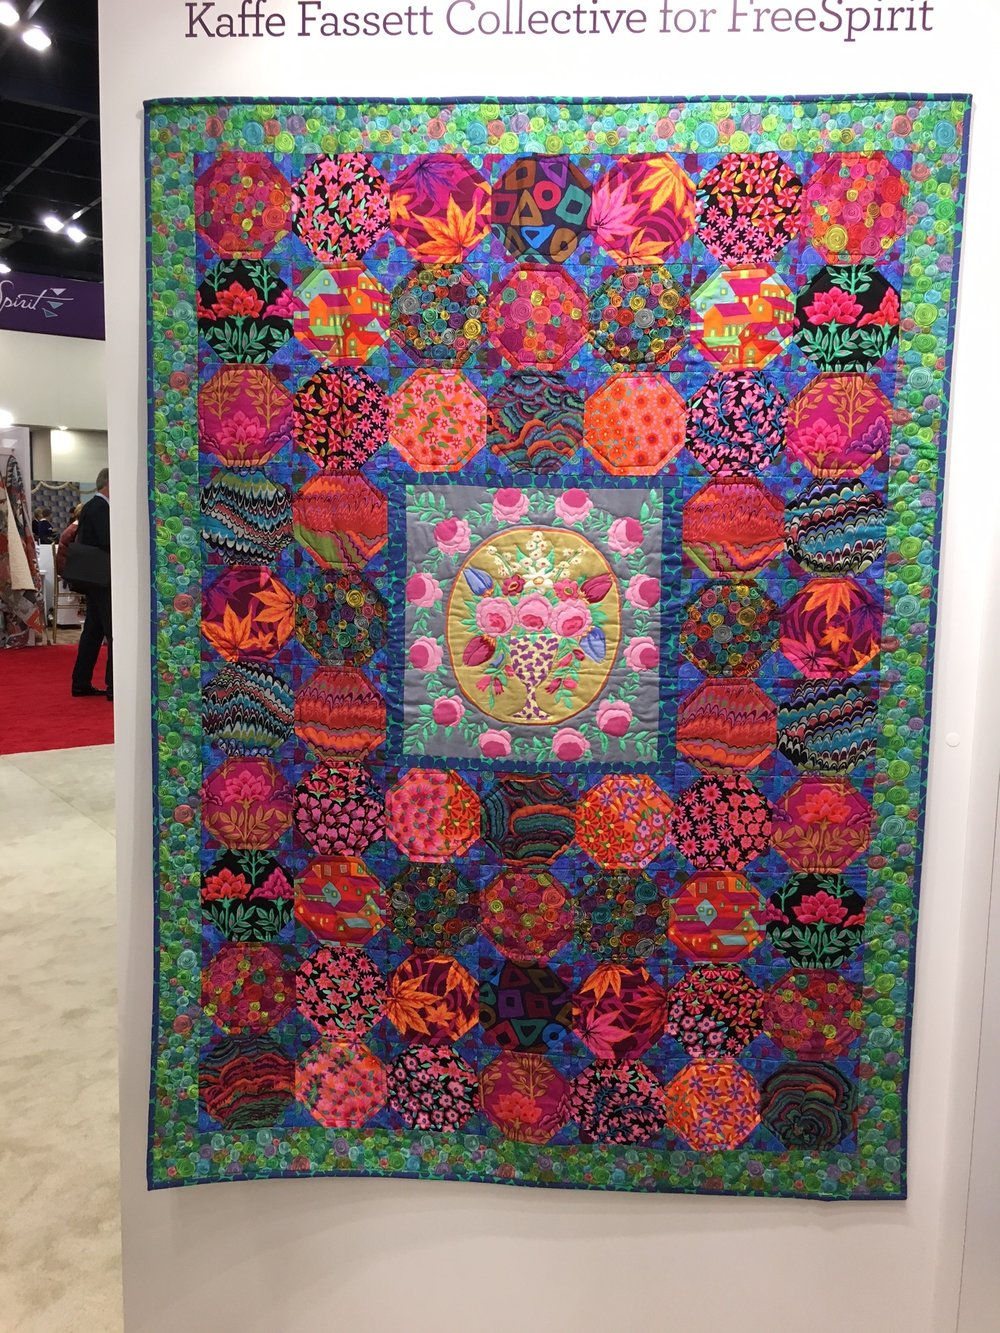 Quilt using Kaffe Fassett Collective Fabrics at the Free Spirit booth.